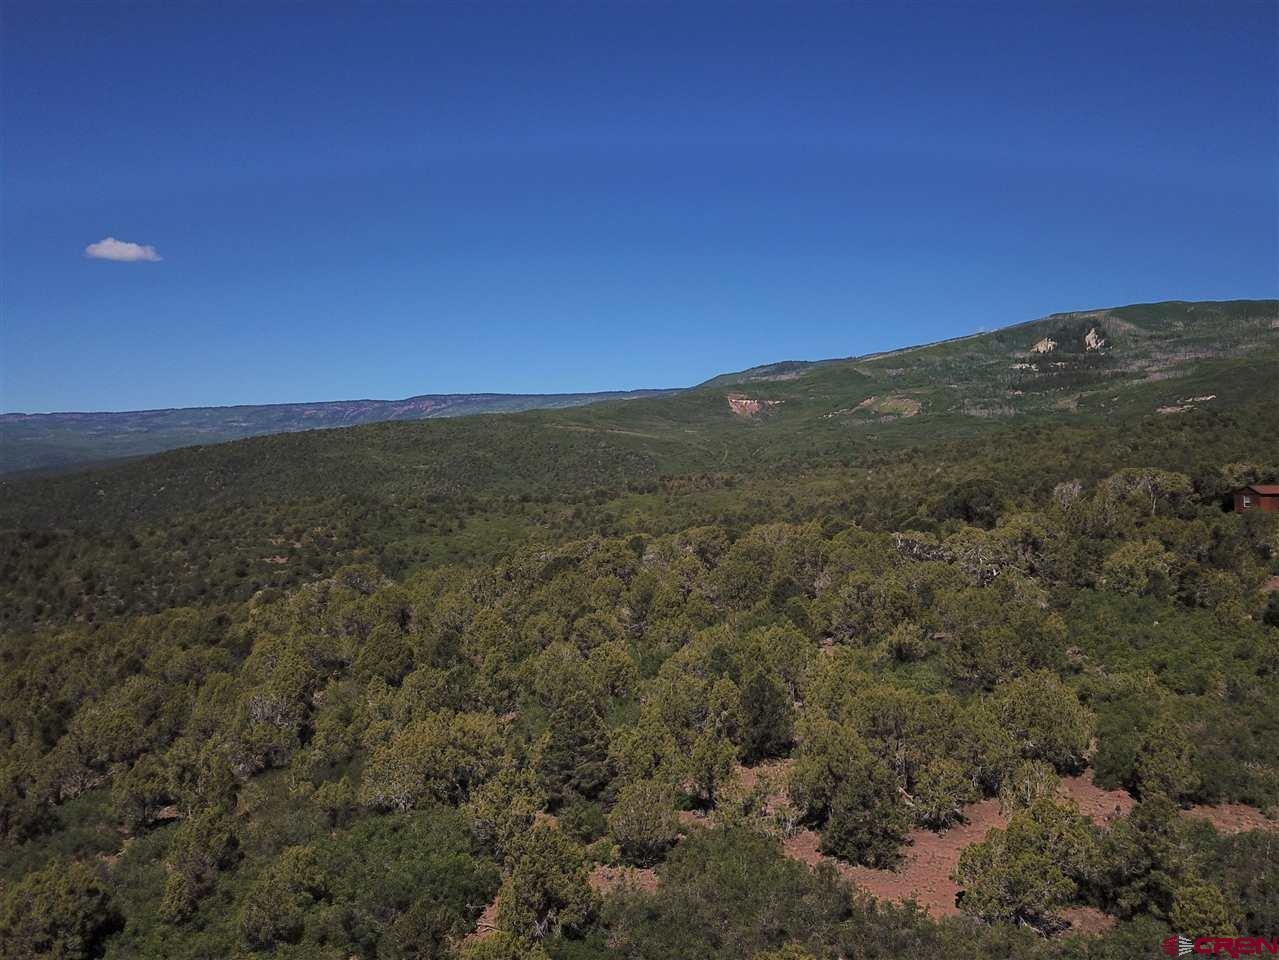 TBD 2225 Road, Cedaredge, Colorado 81413, ,Lots And Land,For Sale,TBD 2225 Road,770945